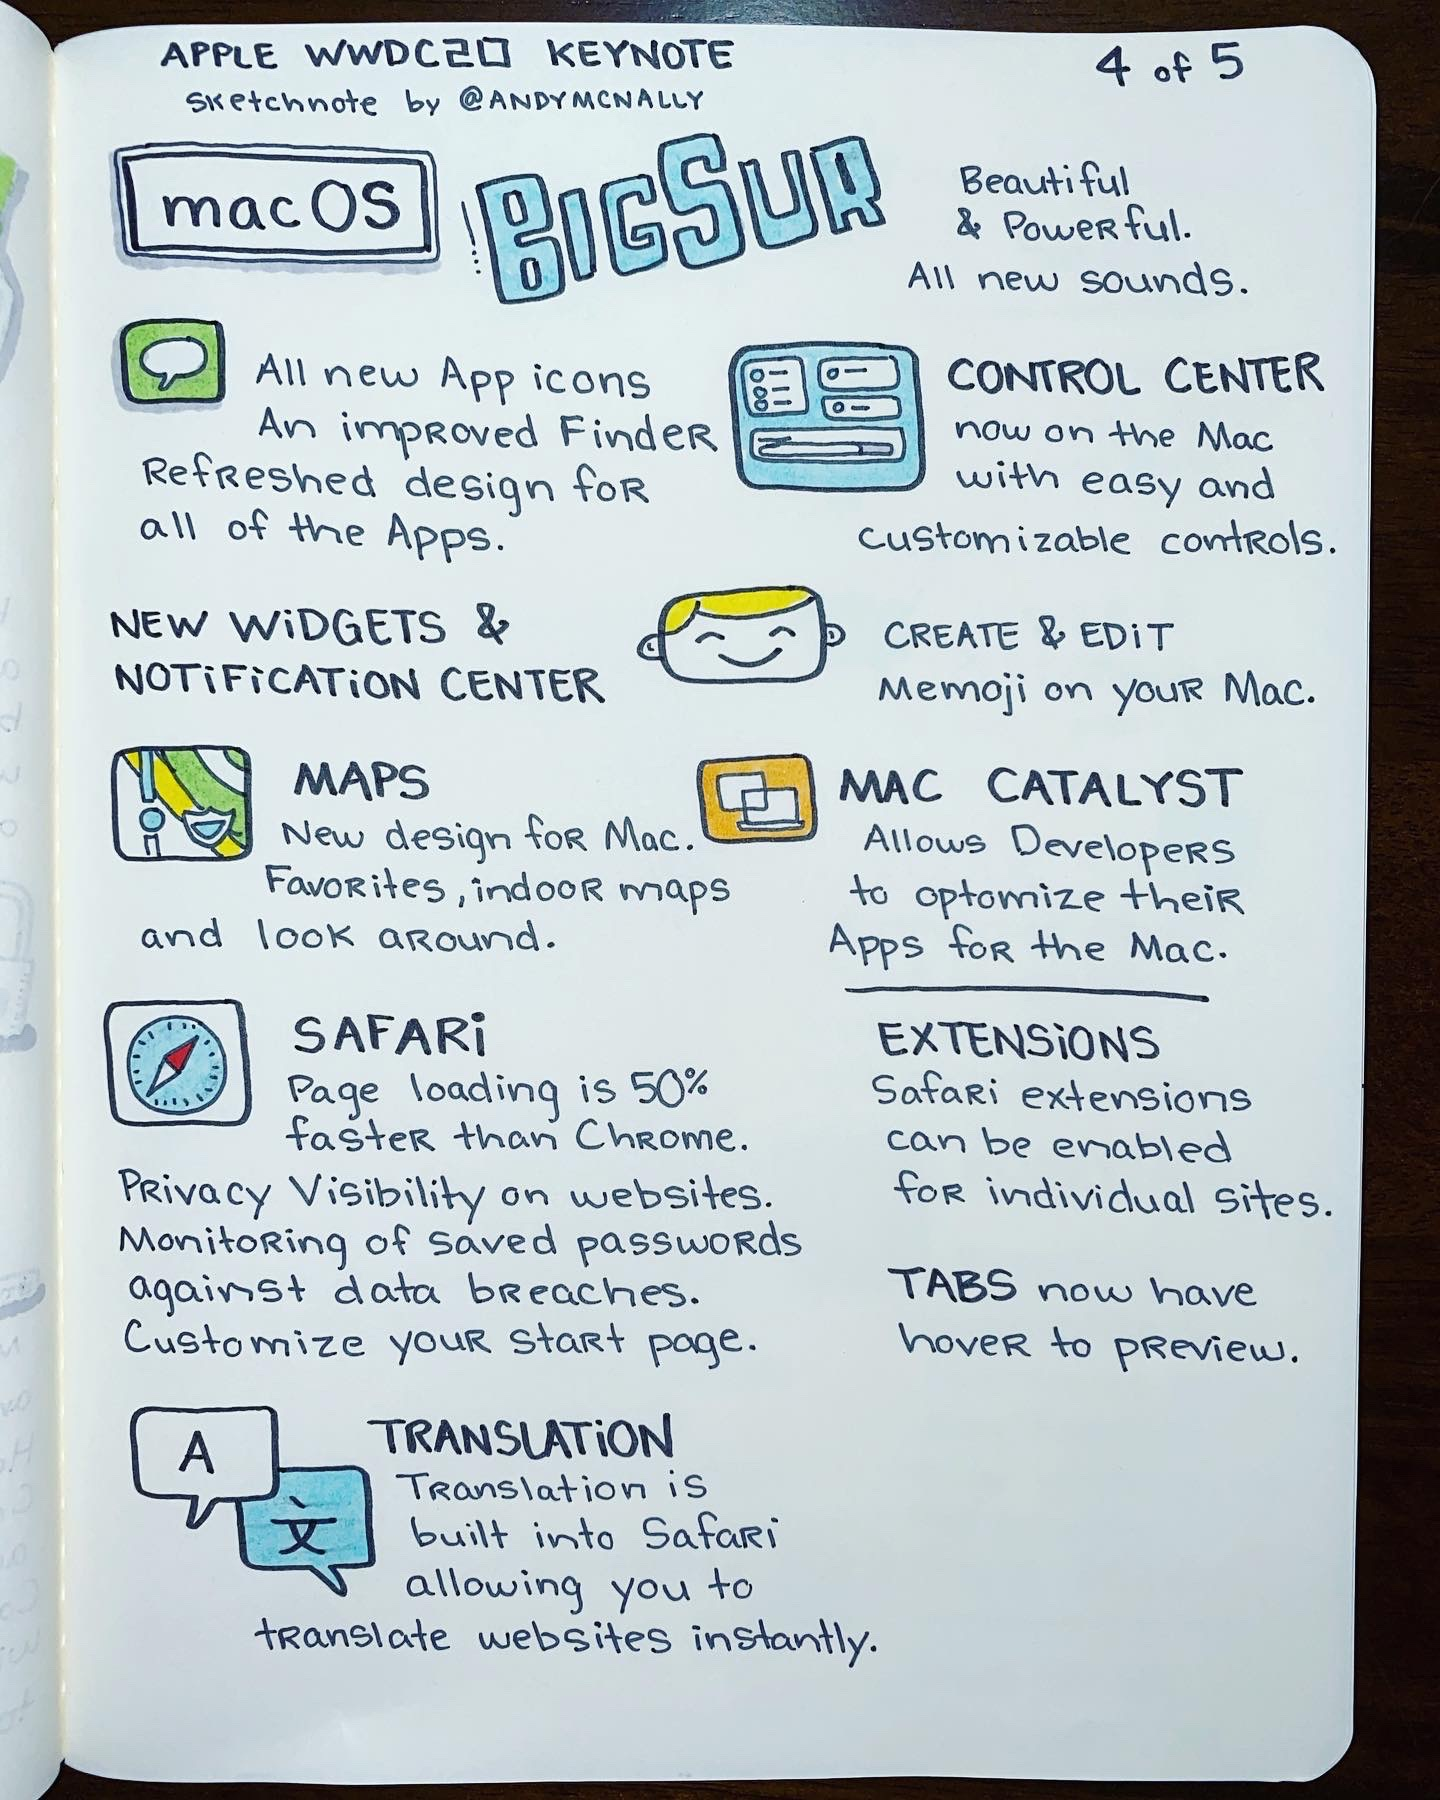 Apple WWDC 2020 Keynote drawing 4 of 5